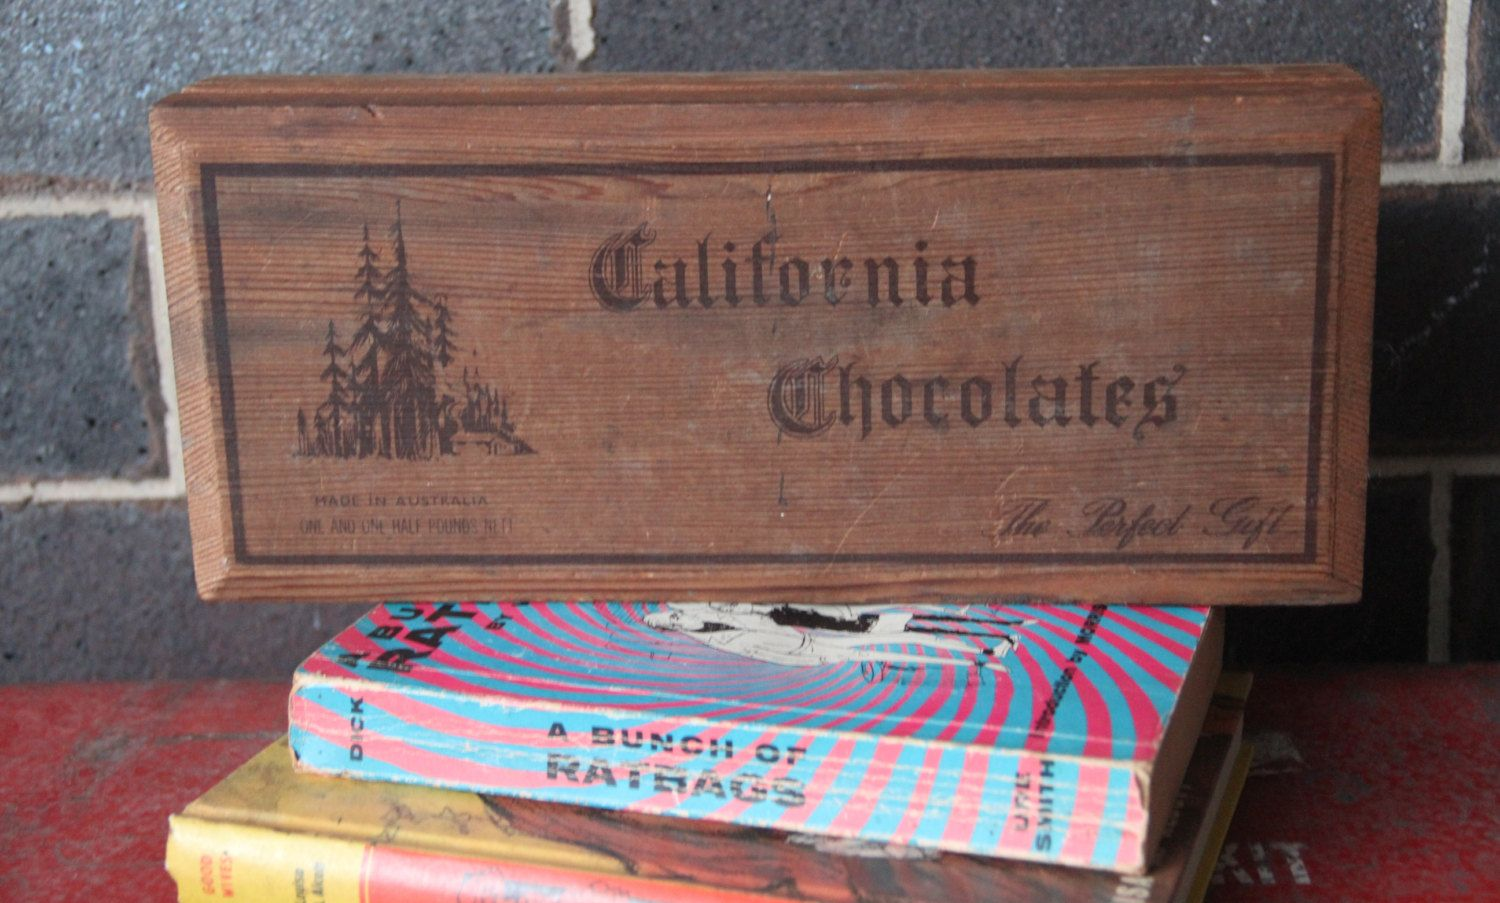 Vintage Wooden California Chocolate Box 1950s Made In Australia